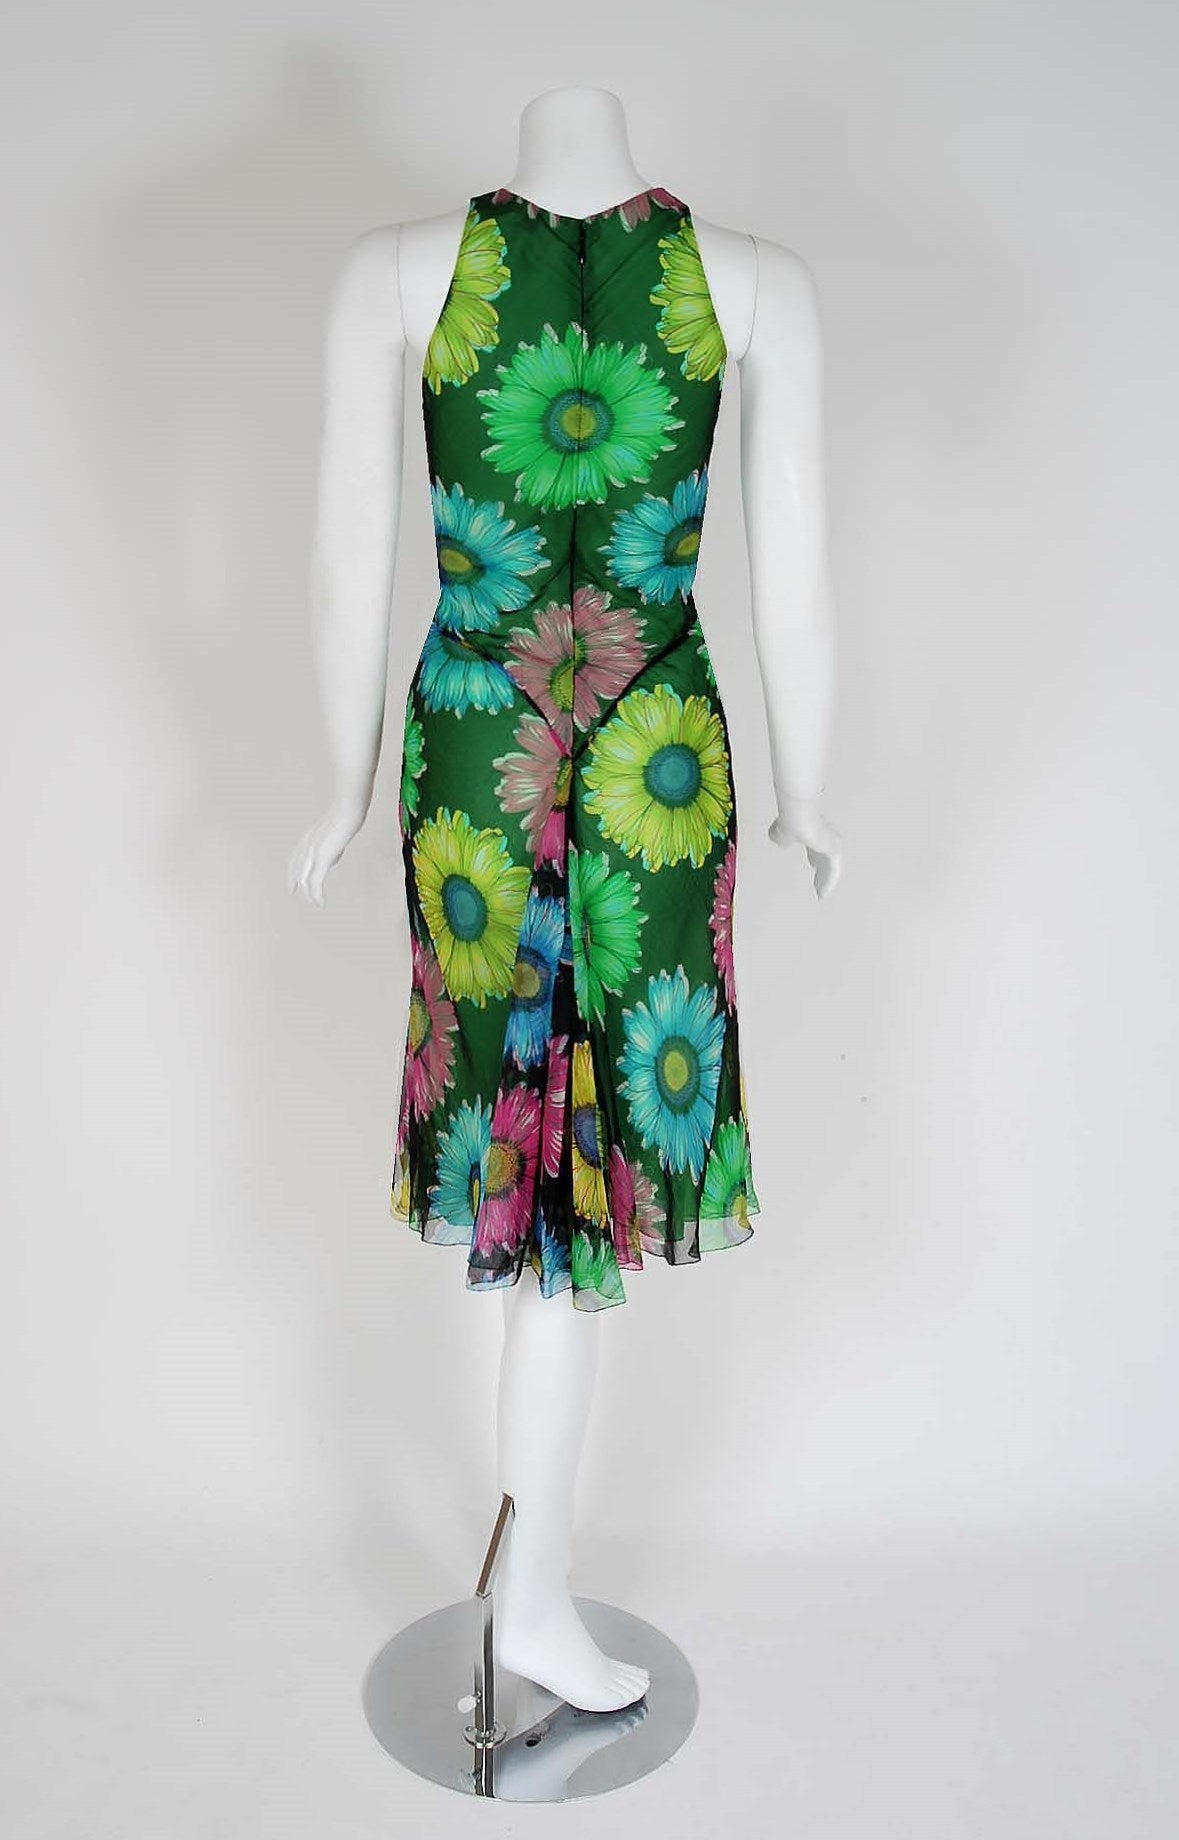 1990's Gianni Versace Couture Sunflower Floral Chiffon Bias-Cut Fishtail Dress In Excellent Condition For Sale In Beverly Hills, CA